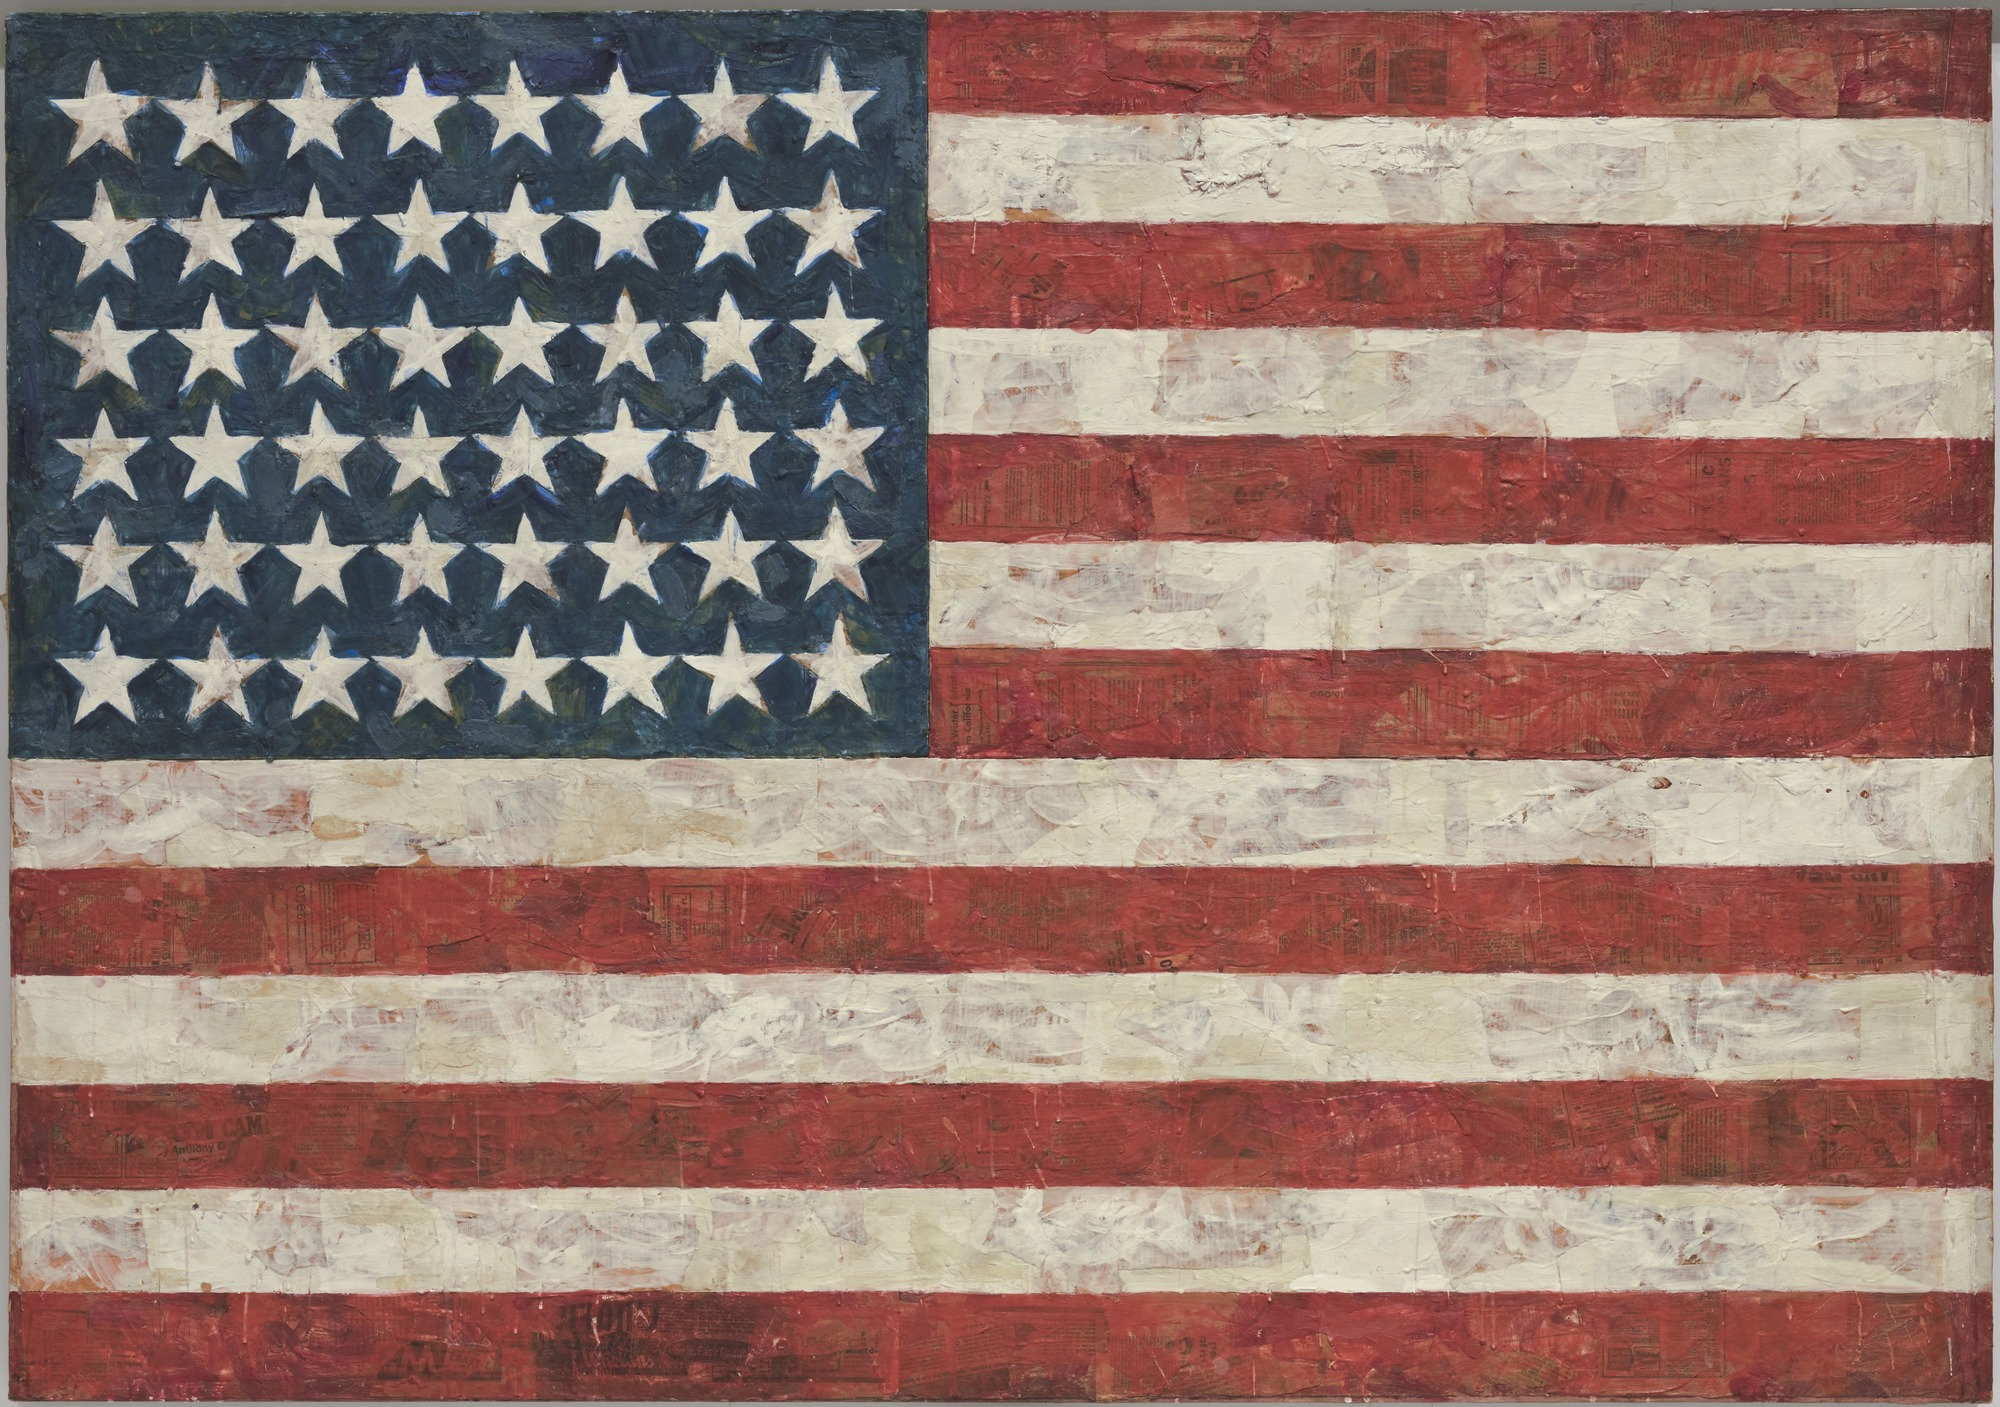 Flag    (1954-55)  Jasper Johns Encaustic, oil, and collage on fabric mounted on plywood, three panels 42 1/4 x 60 5/8 in. Image Courtesy of the  MoMA, New York